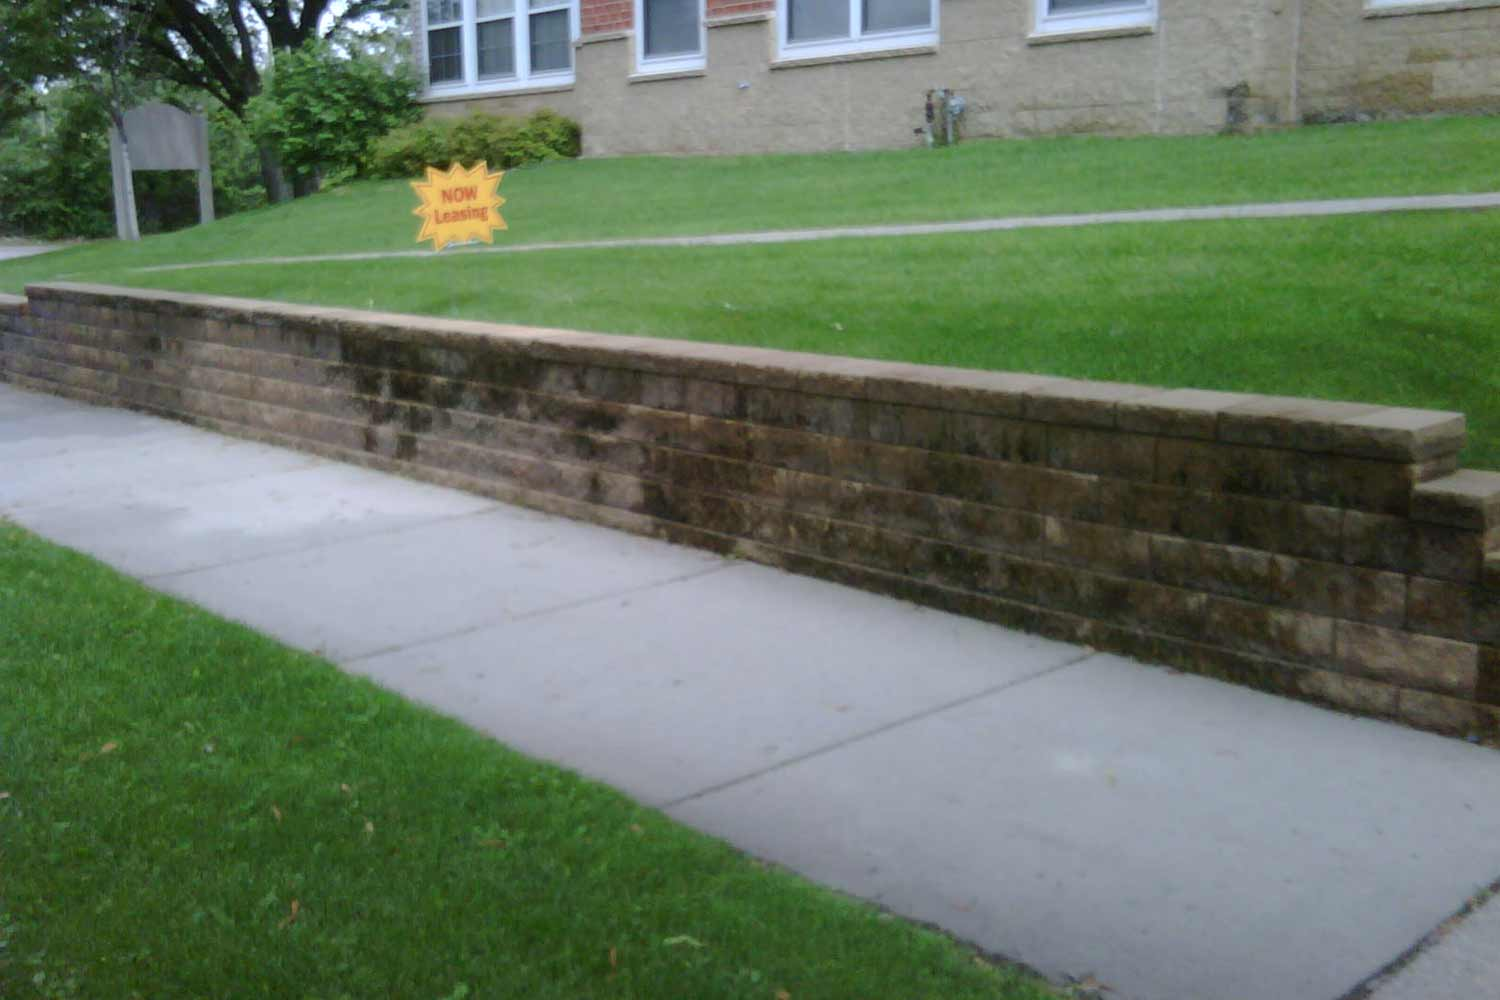 Commercial apartment building retaining wall renovation before.